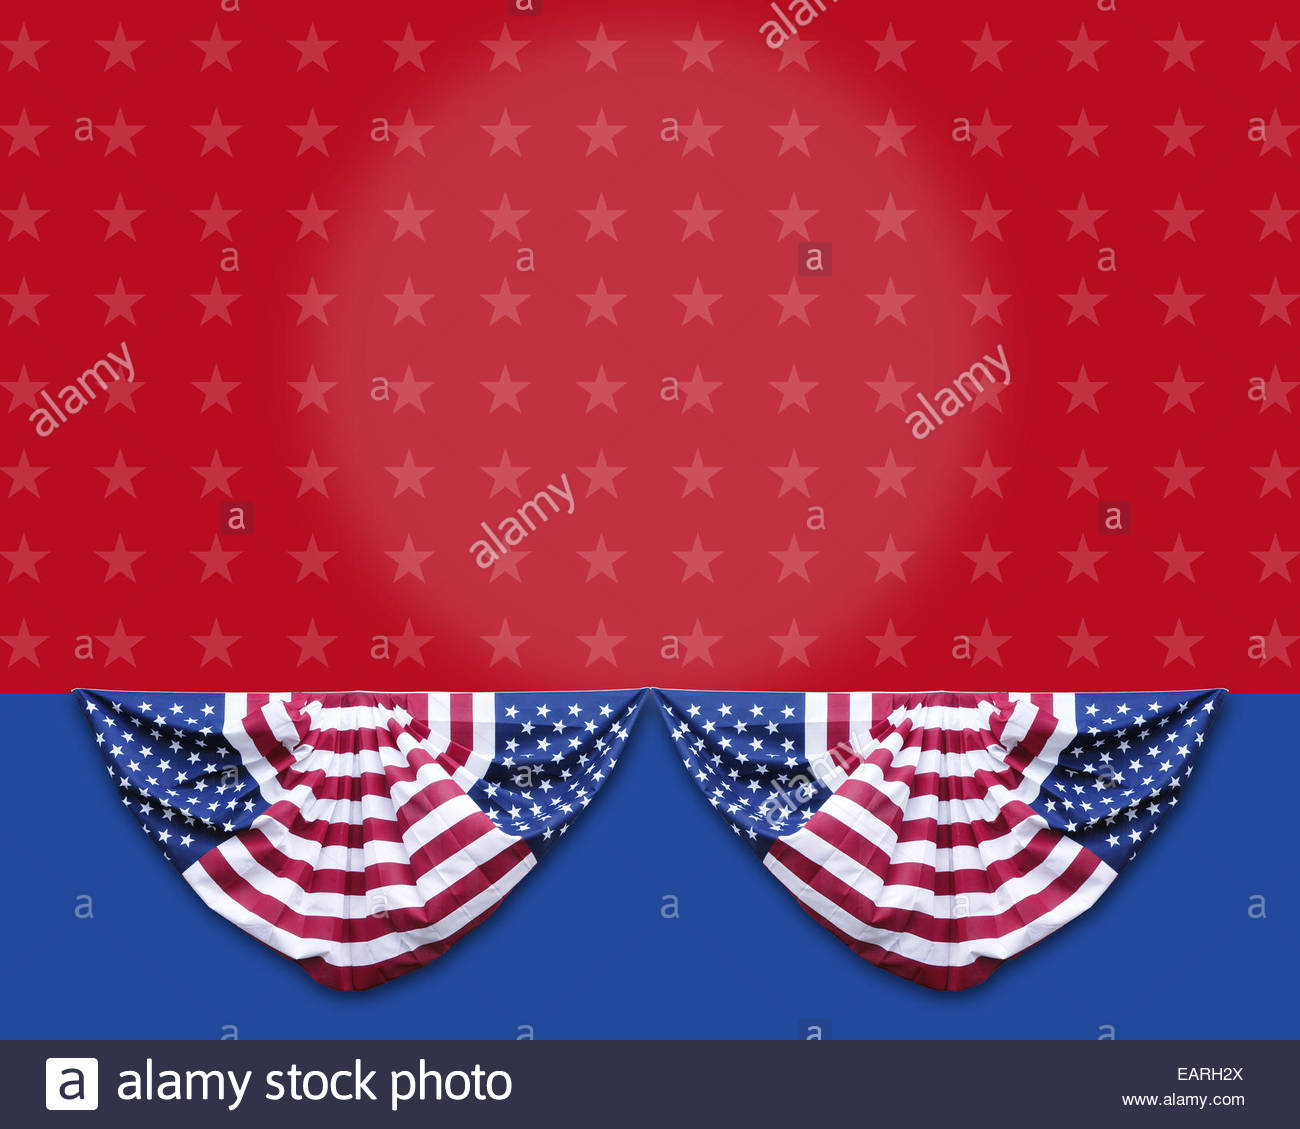 Election Poster Background Red white and blue electioncampaign 1300x1129